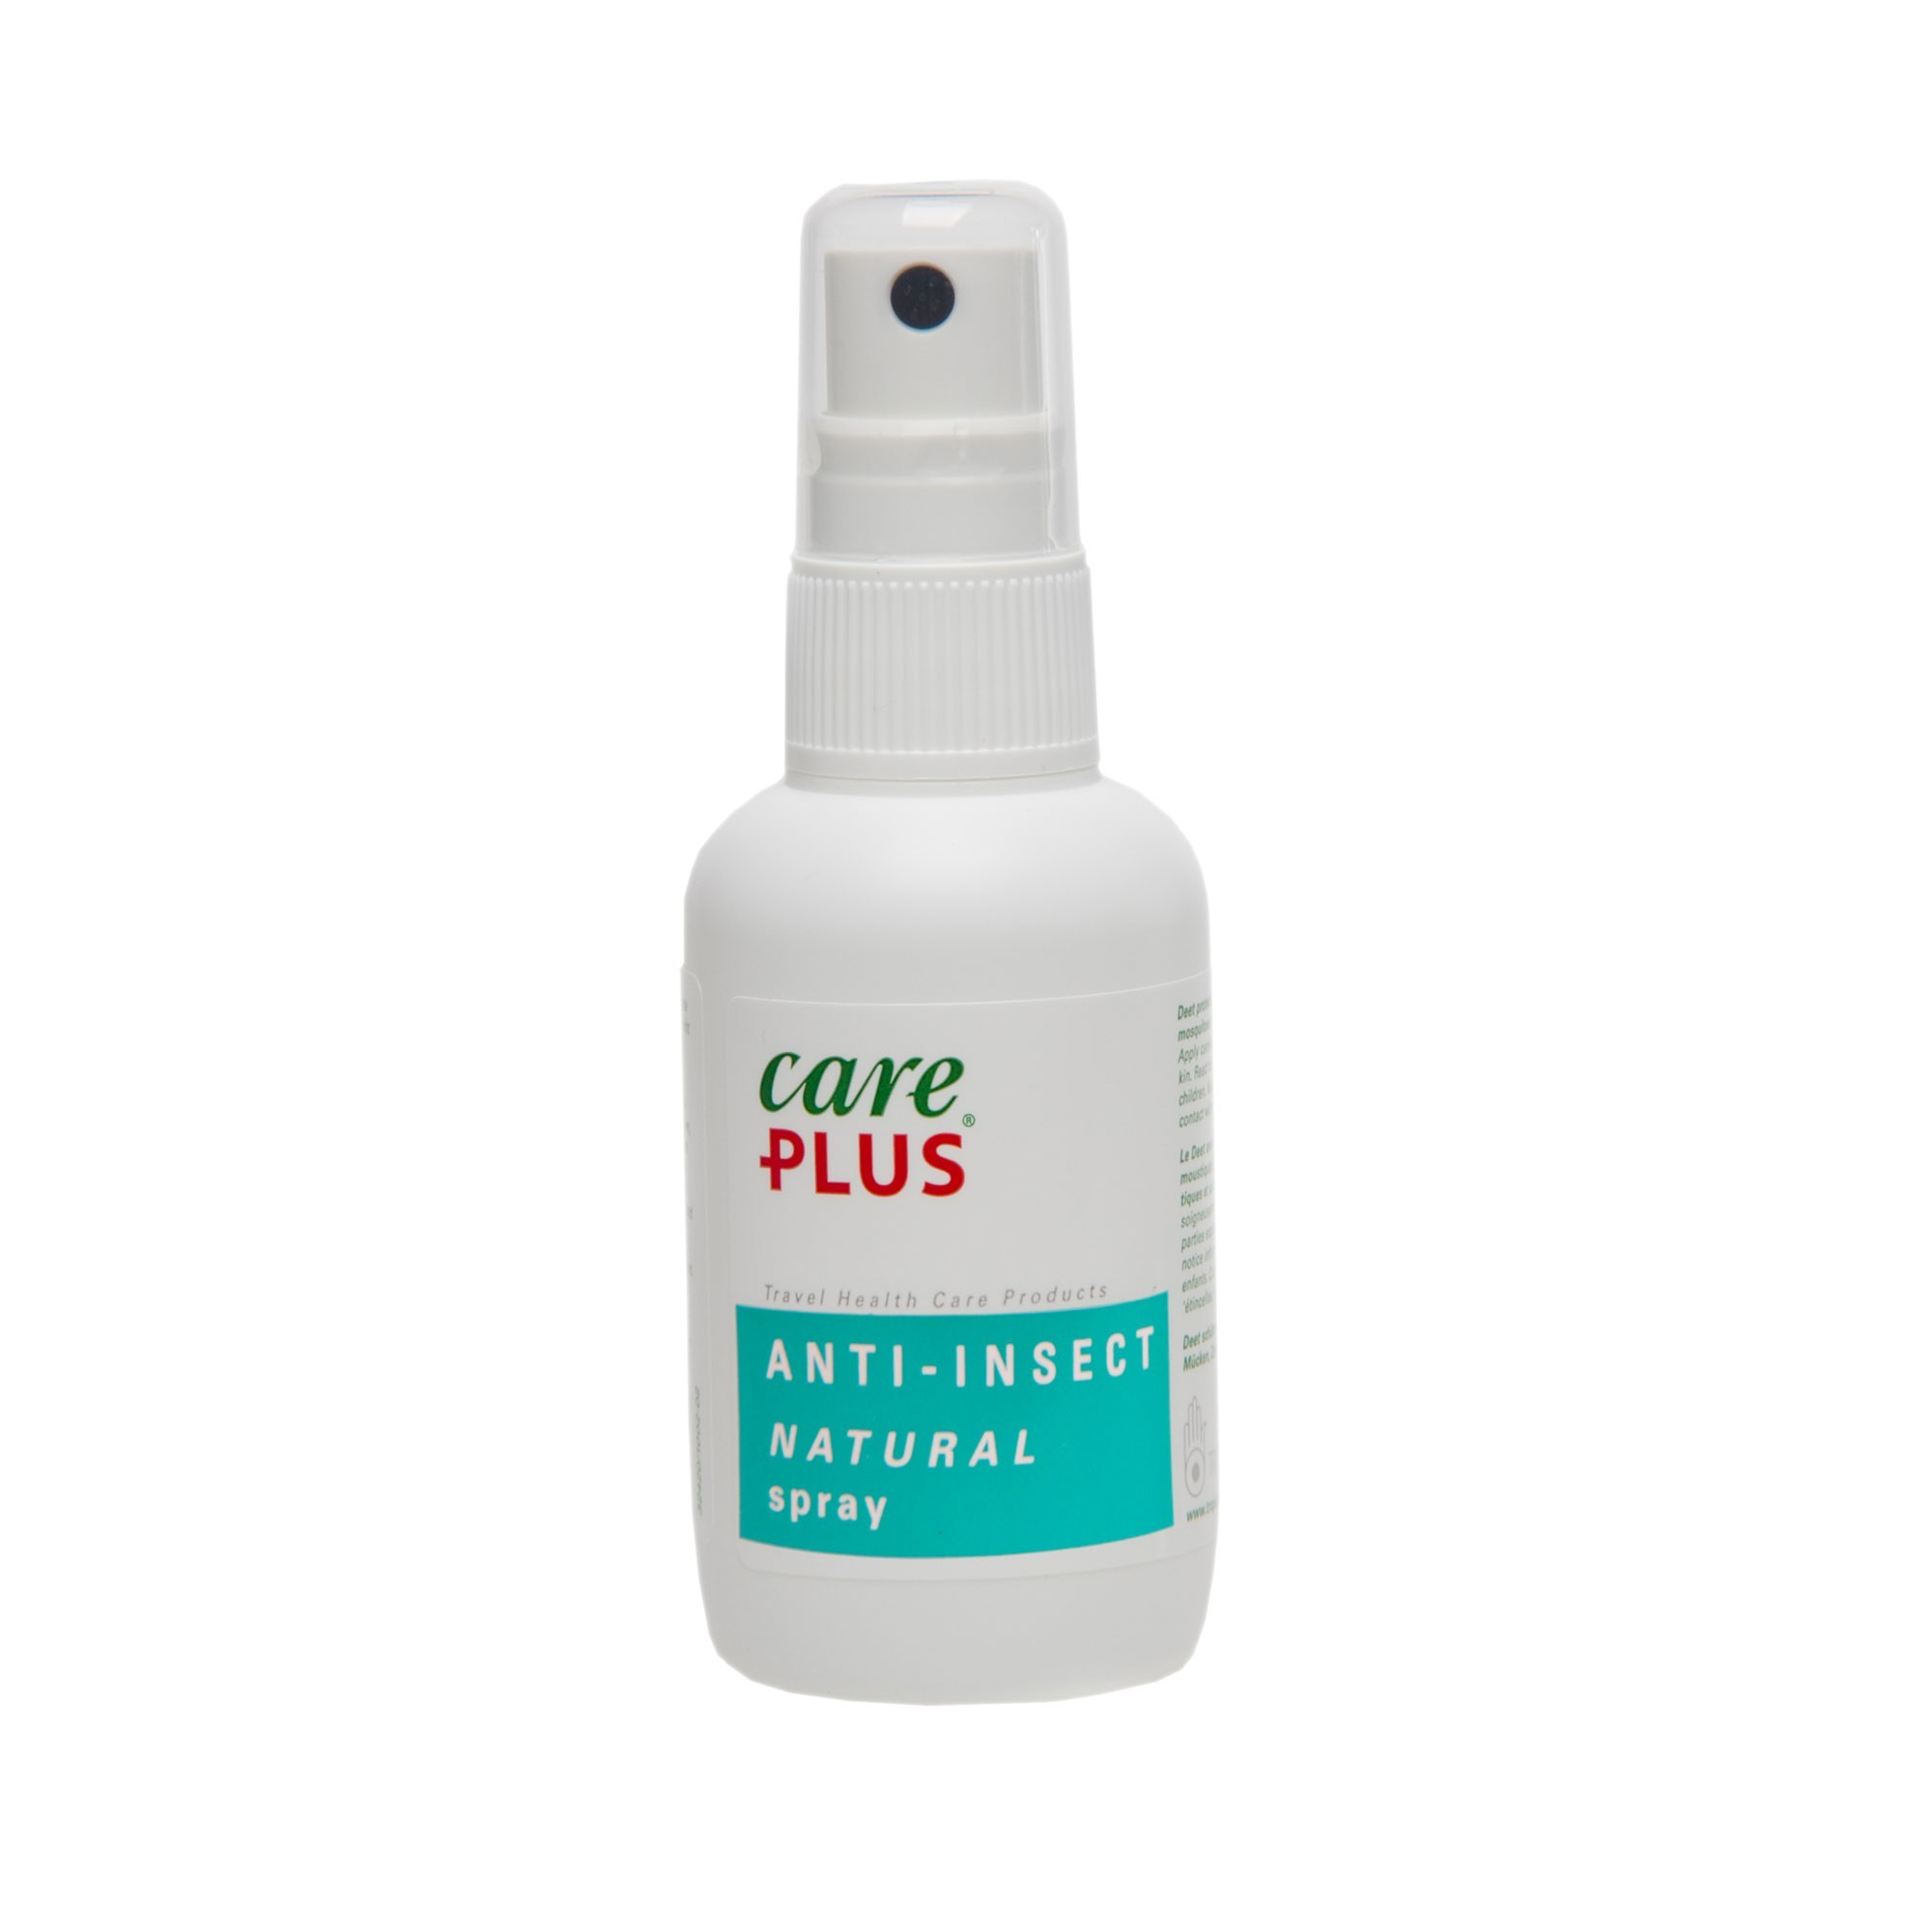 Afbeelding van Care Plus Anti insect Natural Spray 200 Ml